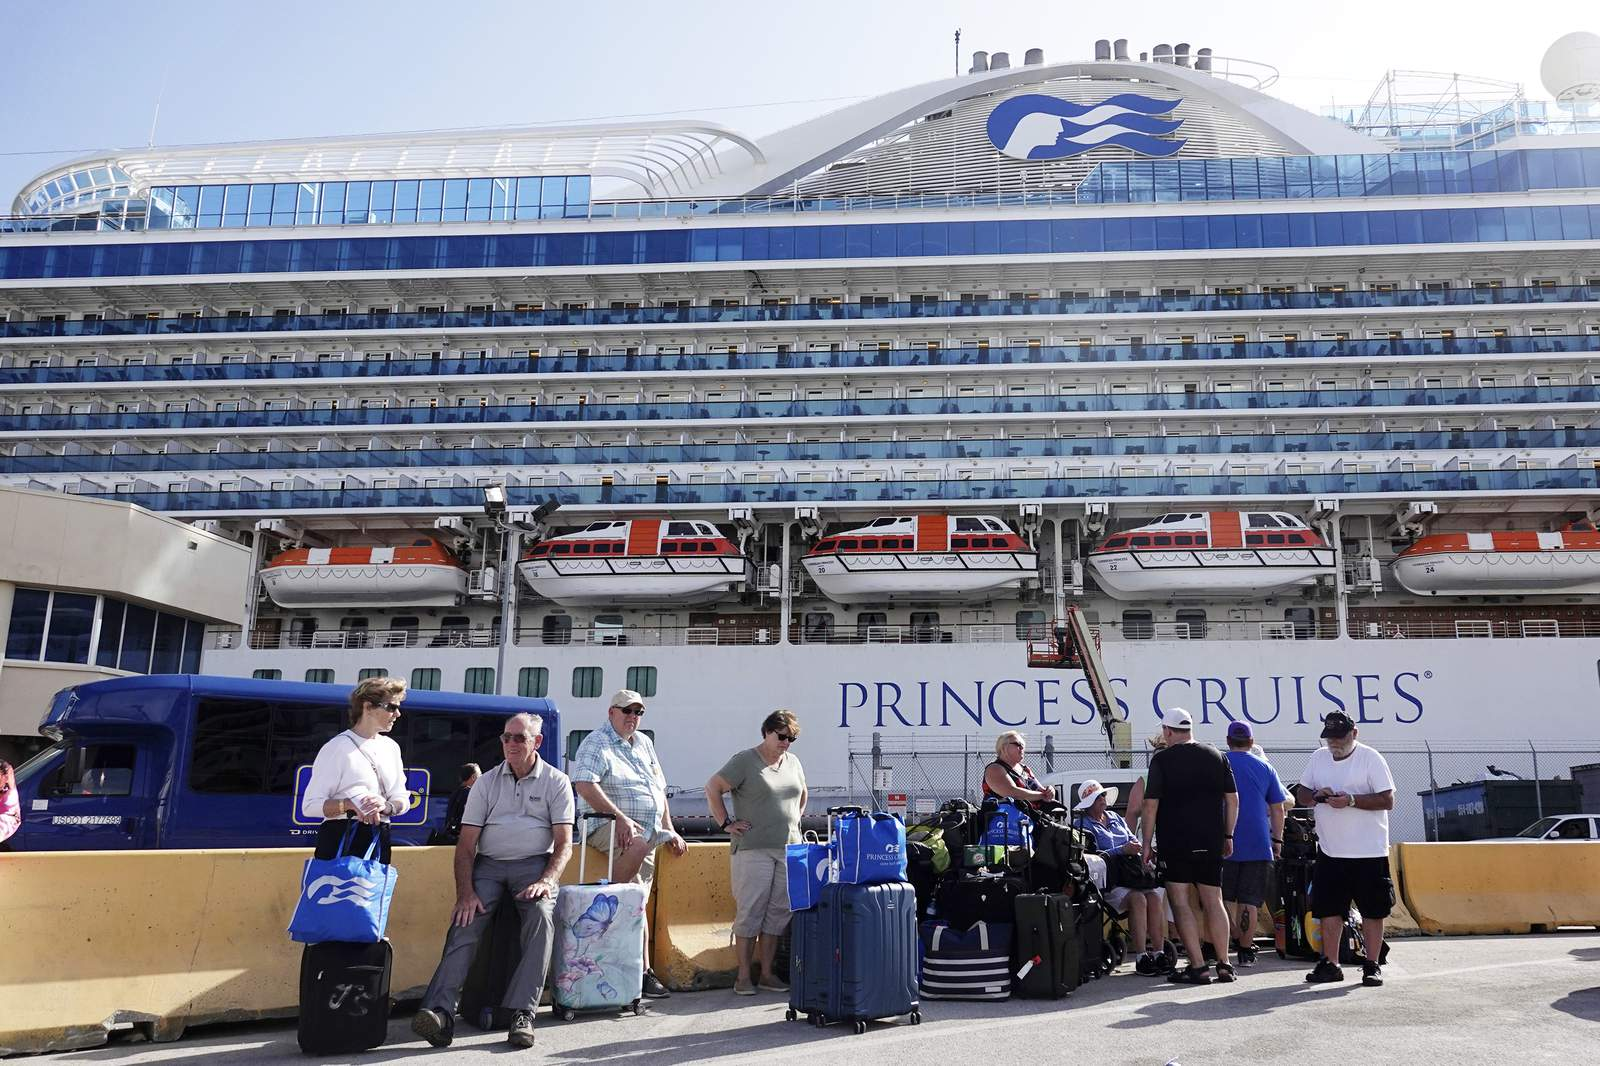 Princess Cruises suspends operations for two months over coronavirus concerns